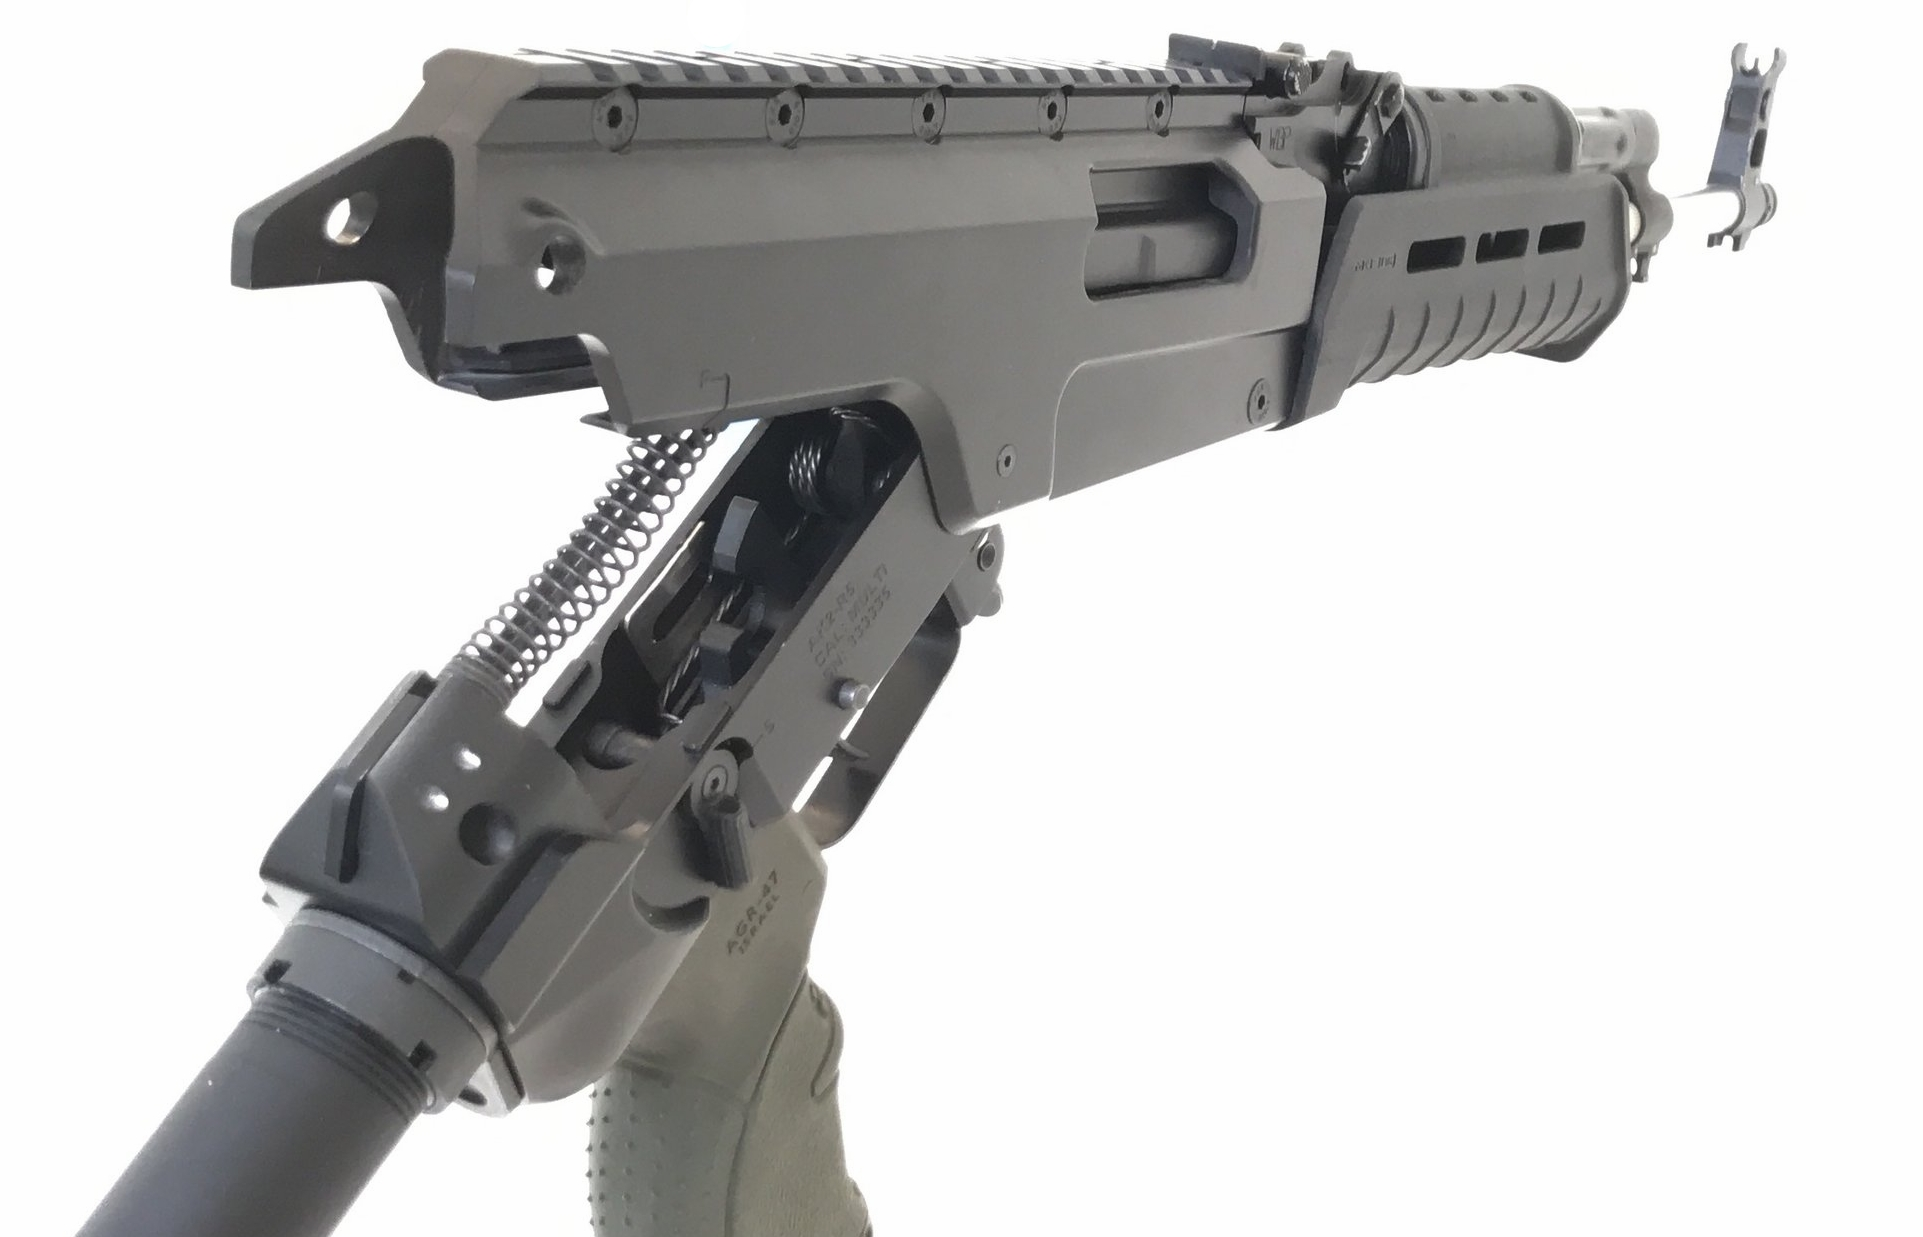 Upper and Lower Receiver  Disassembly is easily accomplished by removing the rear pin and pivoting the lower receiver down. The recoil spring and bolt carrier can be removed by sliding them out of the back of the rifle.